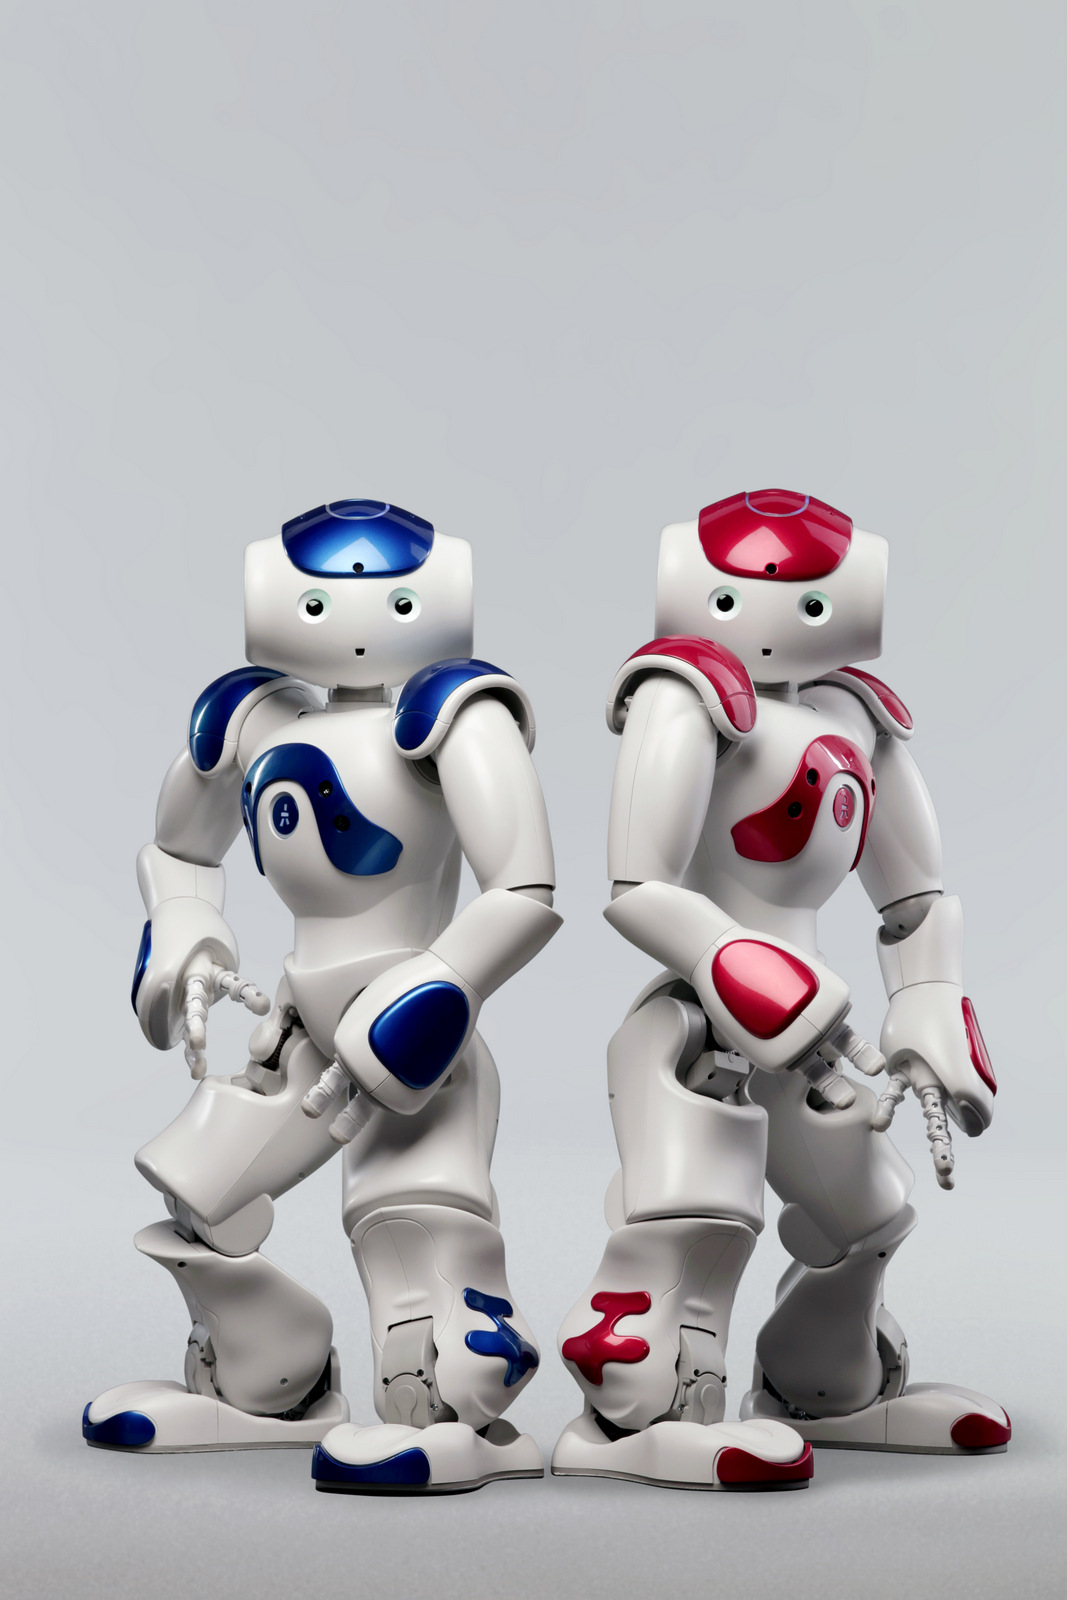 SoftBank has sold 10,000 Nao robots. Now the tiny humanoid wants to 'conquer new markets' with Zora